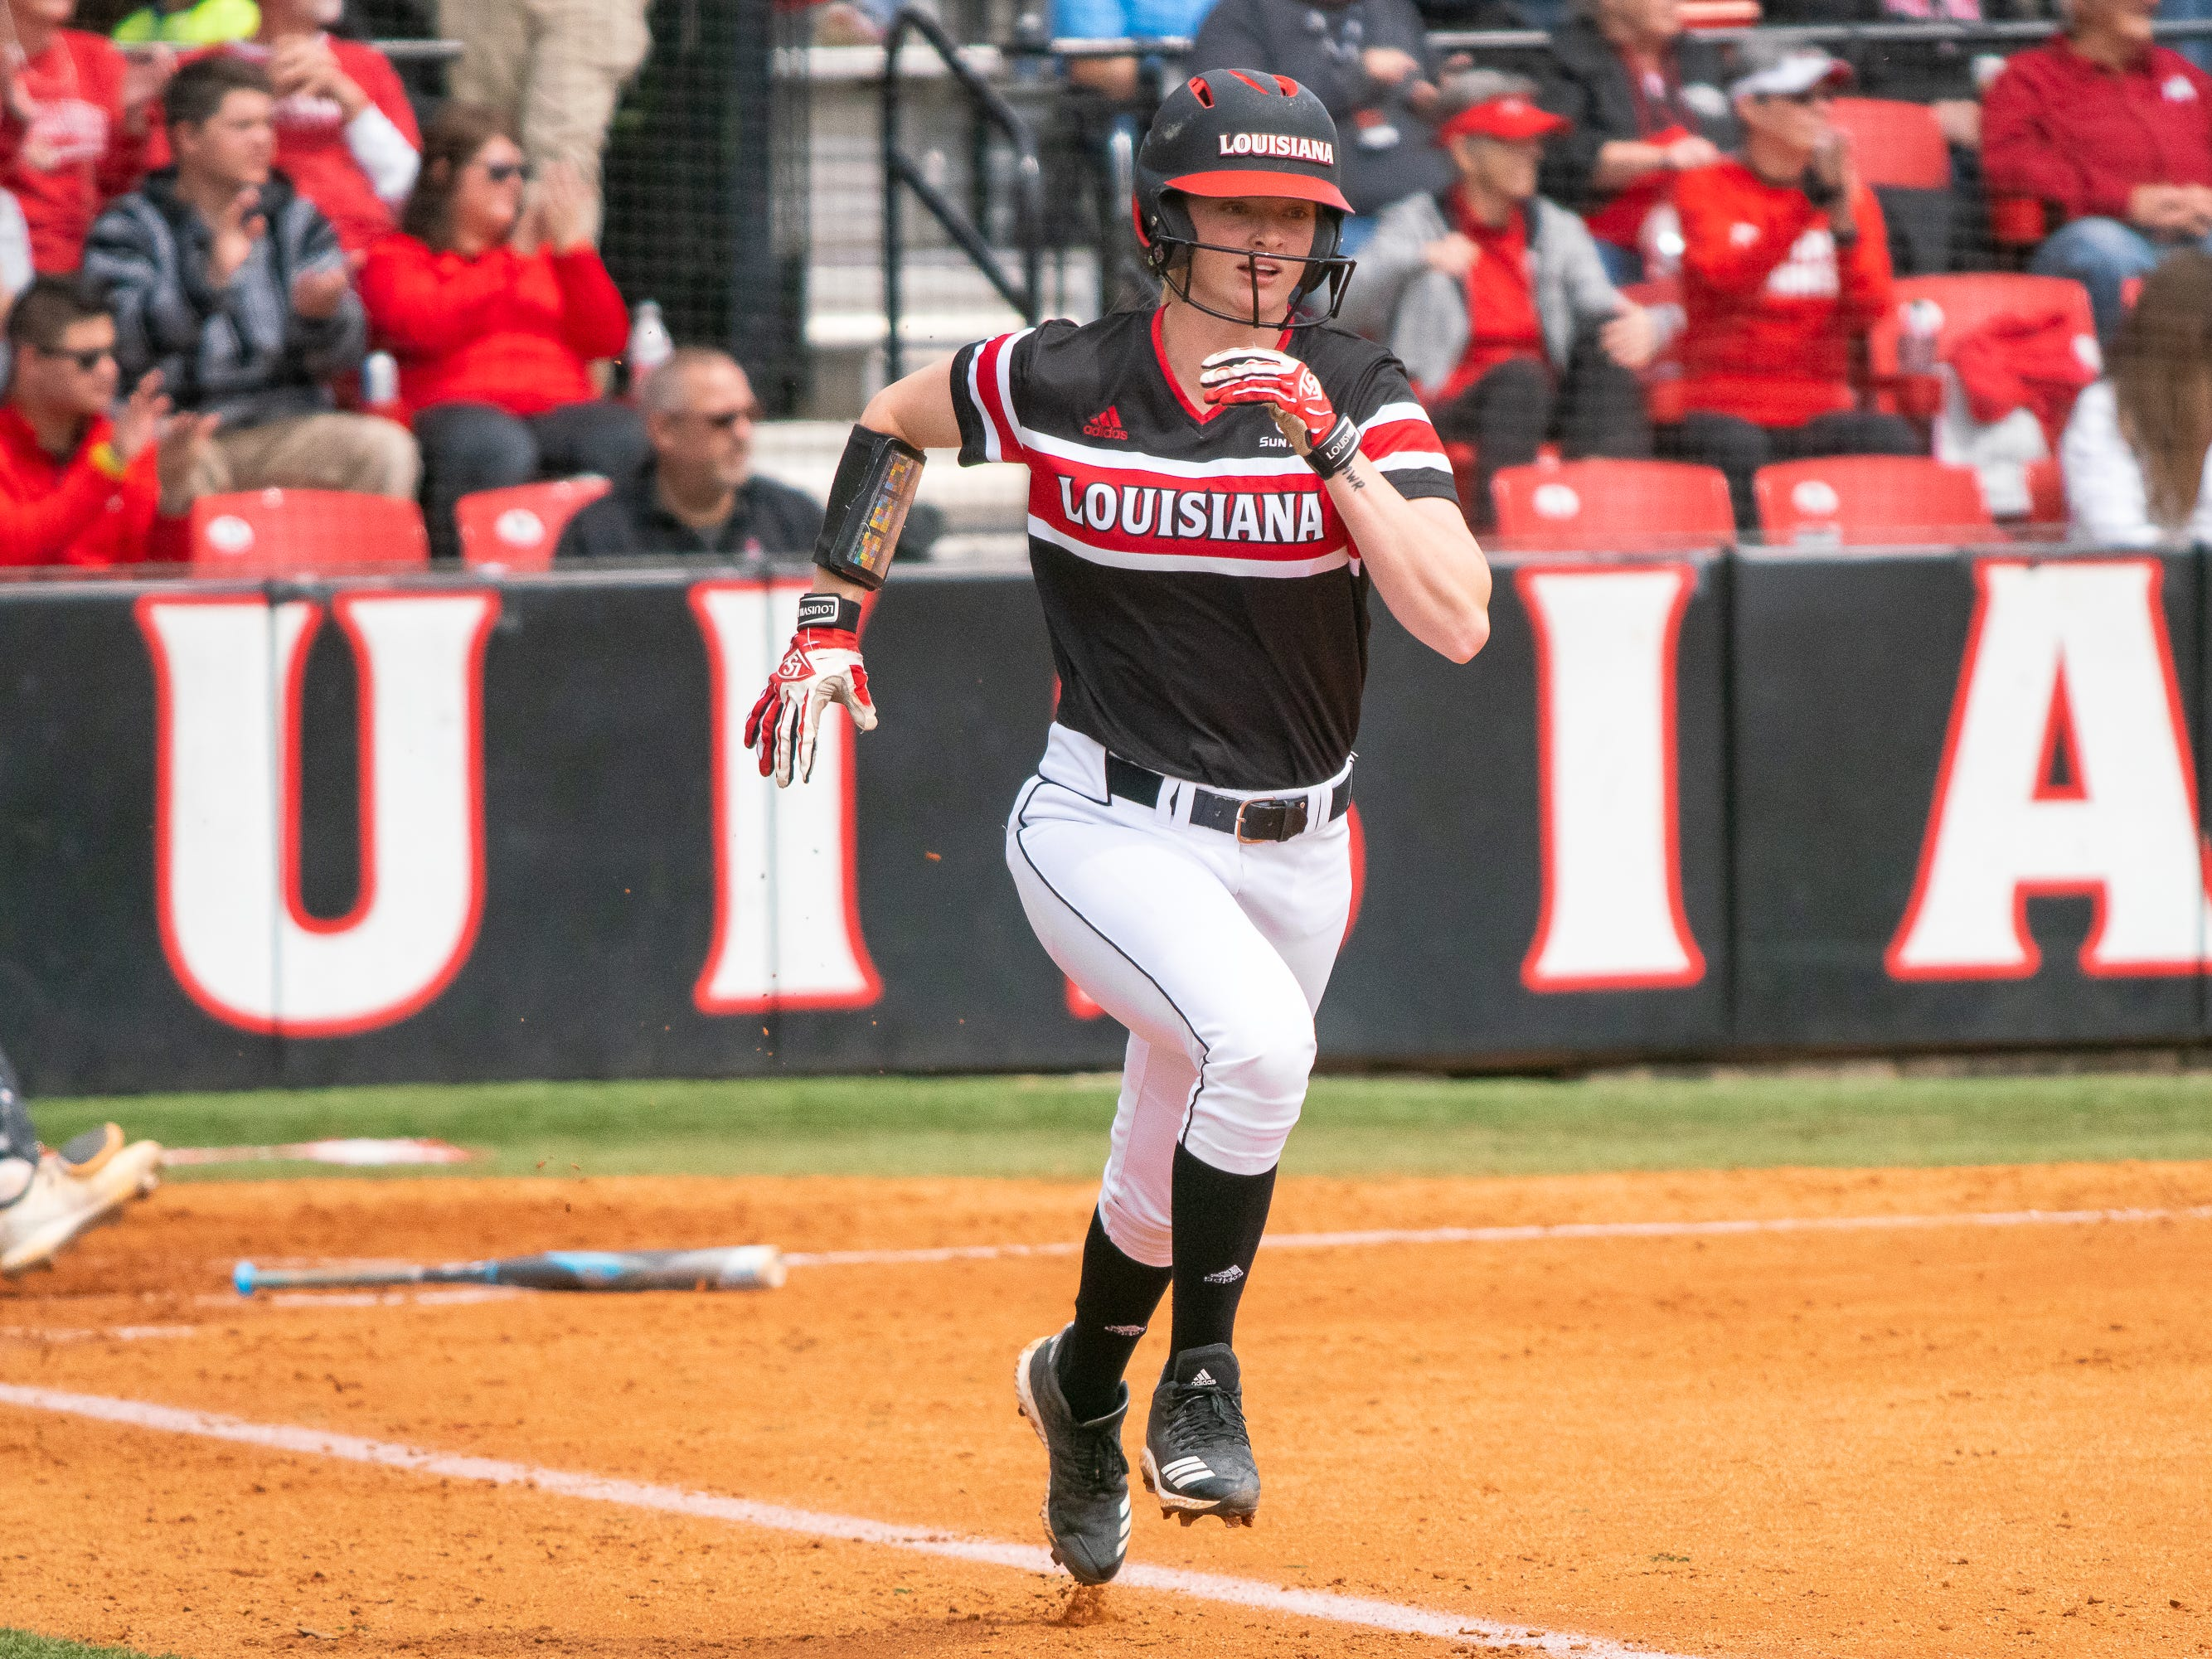 UL's Julie Rawls sprints to first base as the Ragin' Cajuns take on the Troy Trojans at Yvette Girouard Field at Lamson Park on Saturday, March 16, 2019.